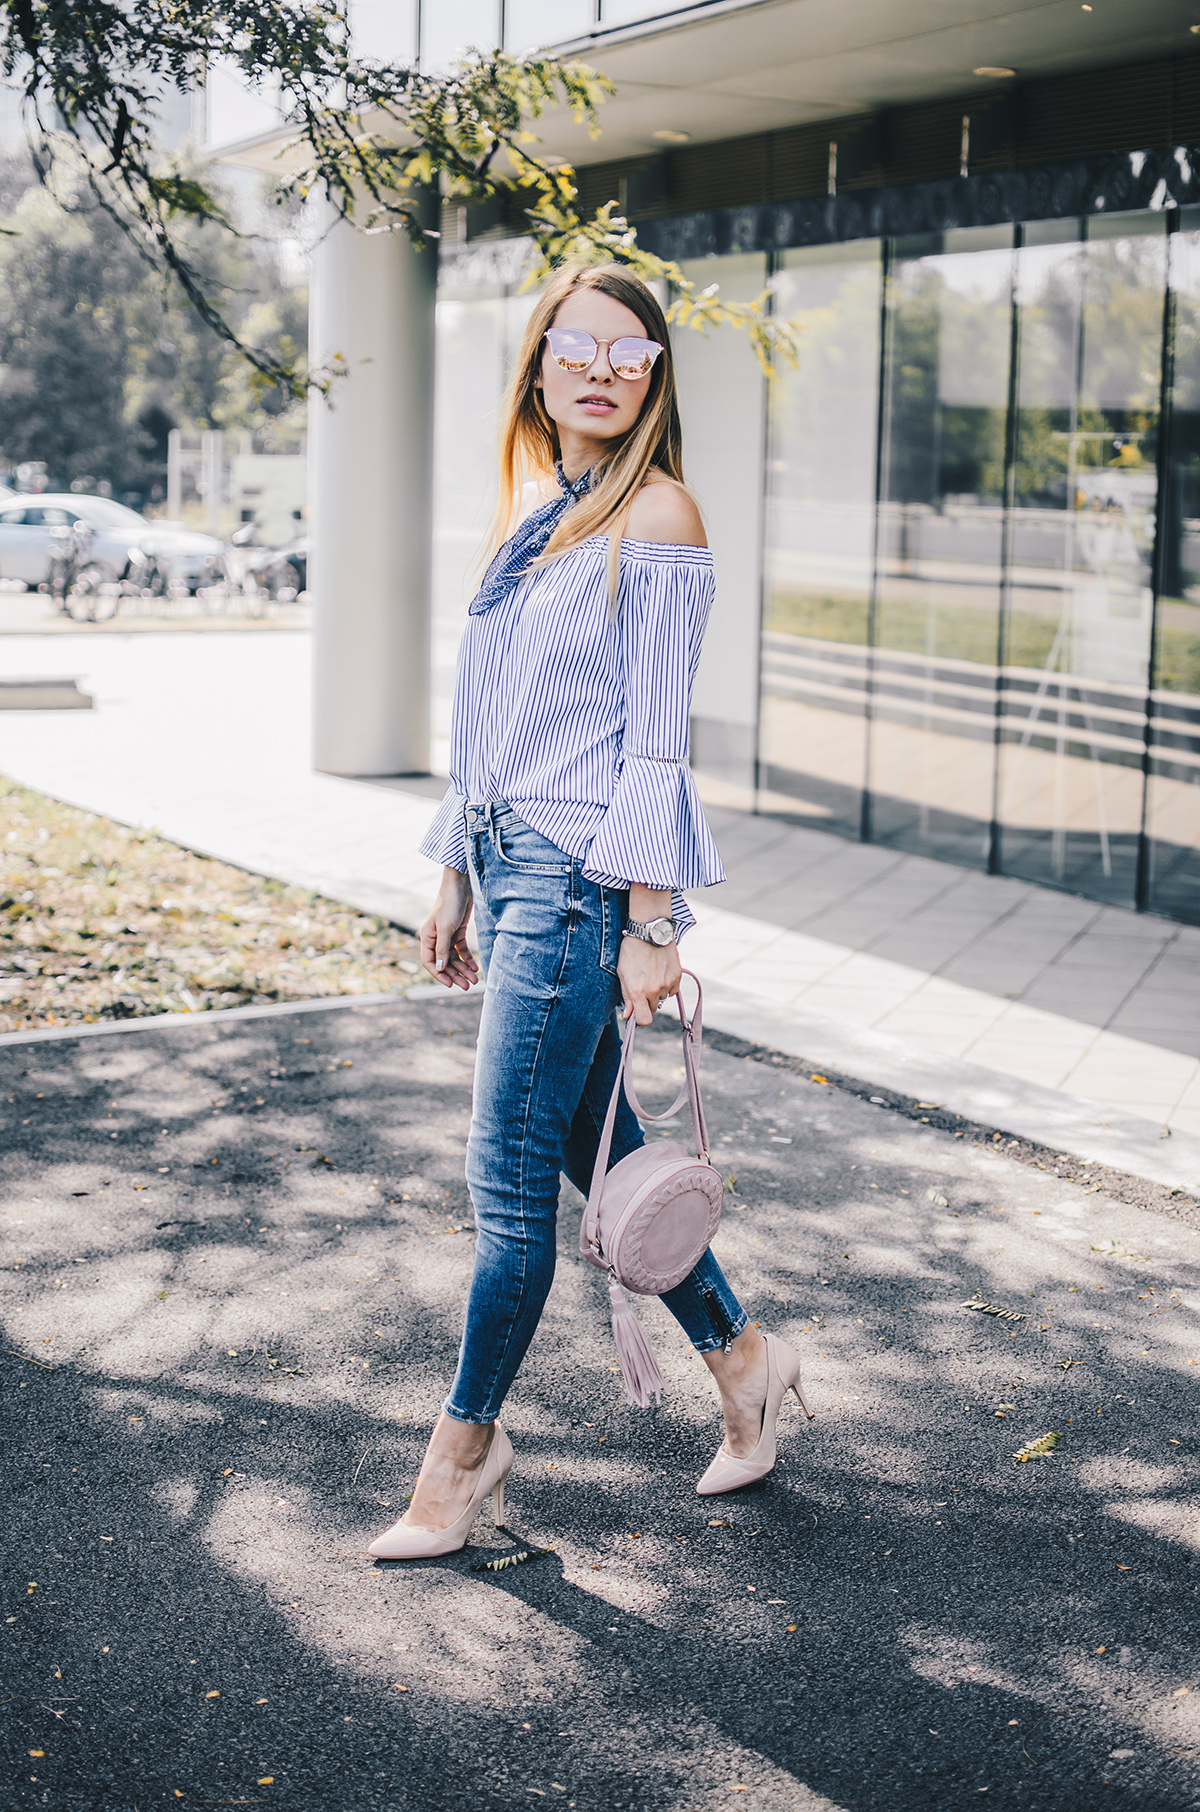 off-shoulder-ruffle-sleeves-zara-jeans-mirroredsunglasses-scarf-7